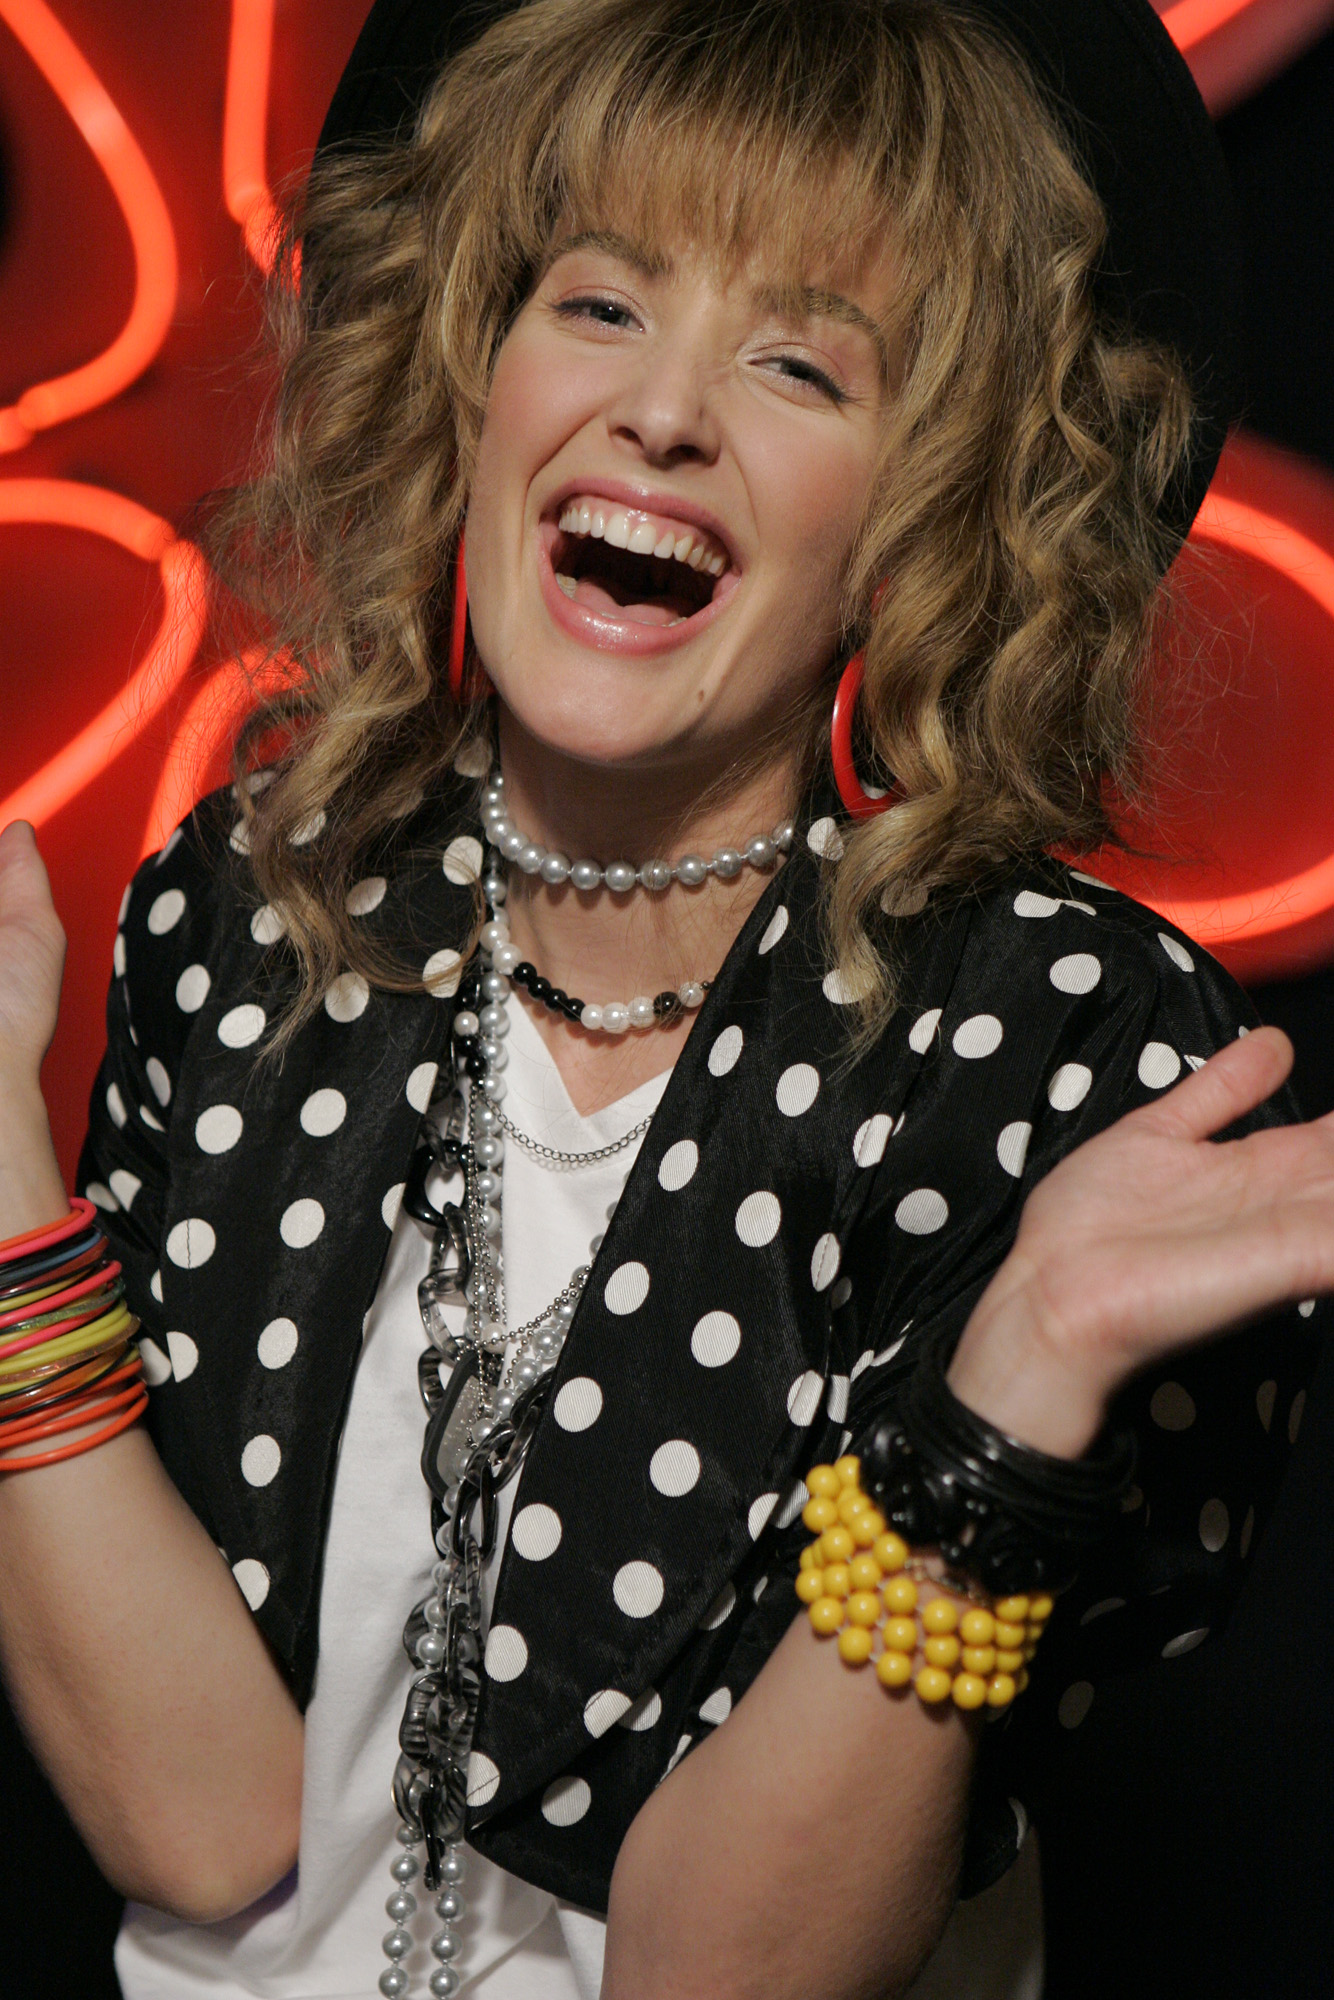 Robin Sparkles | Comics and Other Amusing Things ...